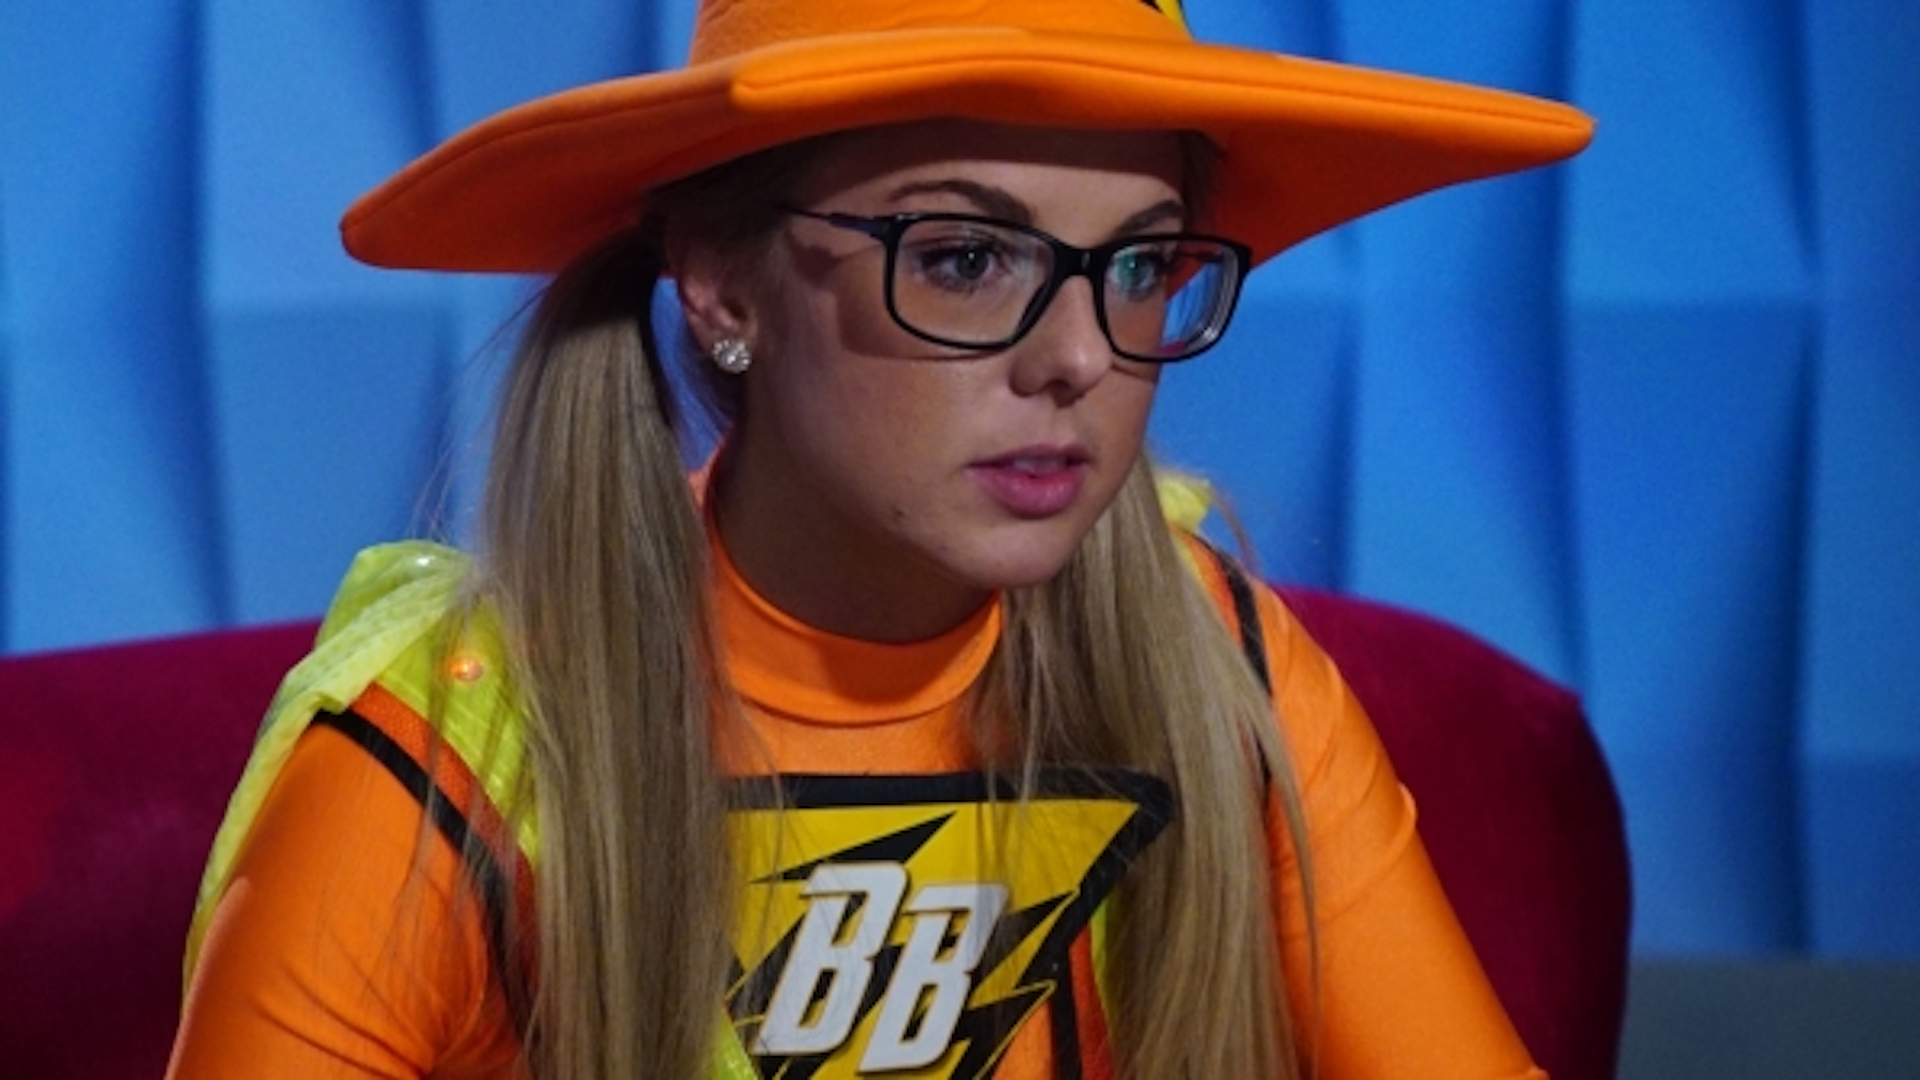 Nicole Franzel's Super Safety costume